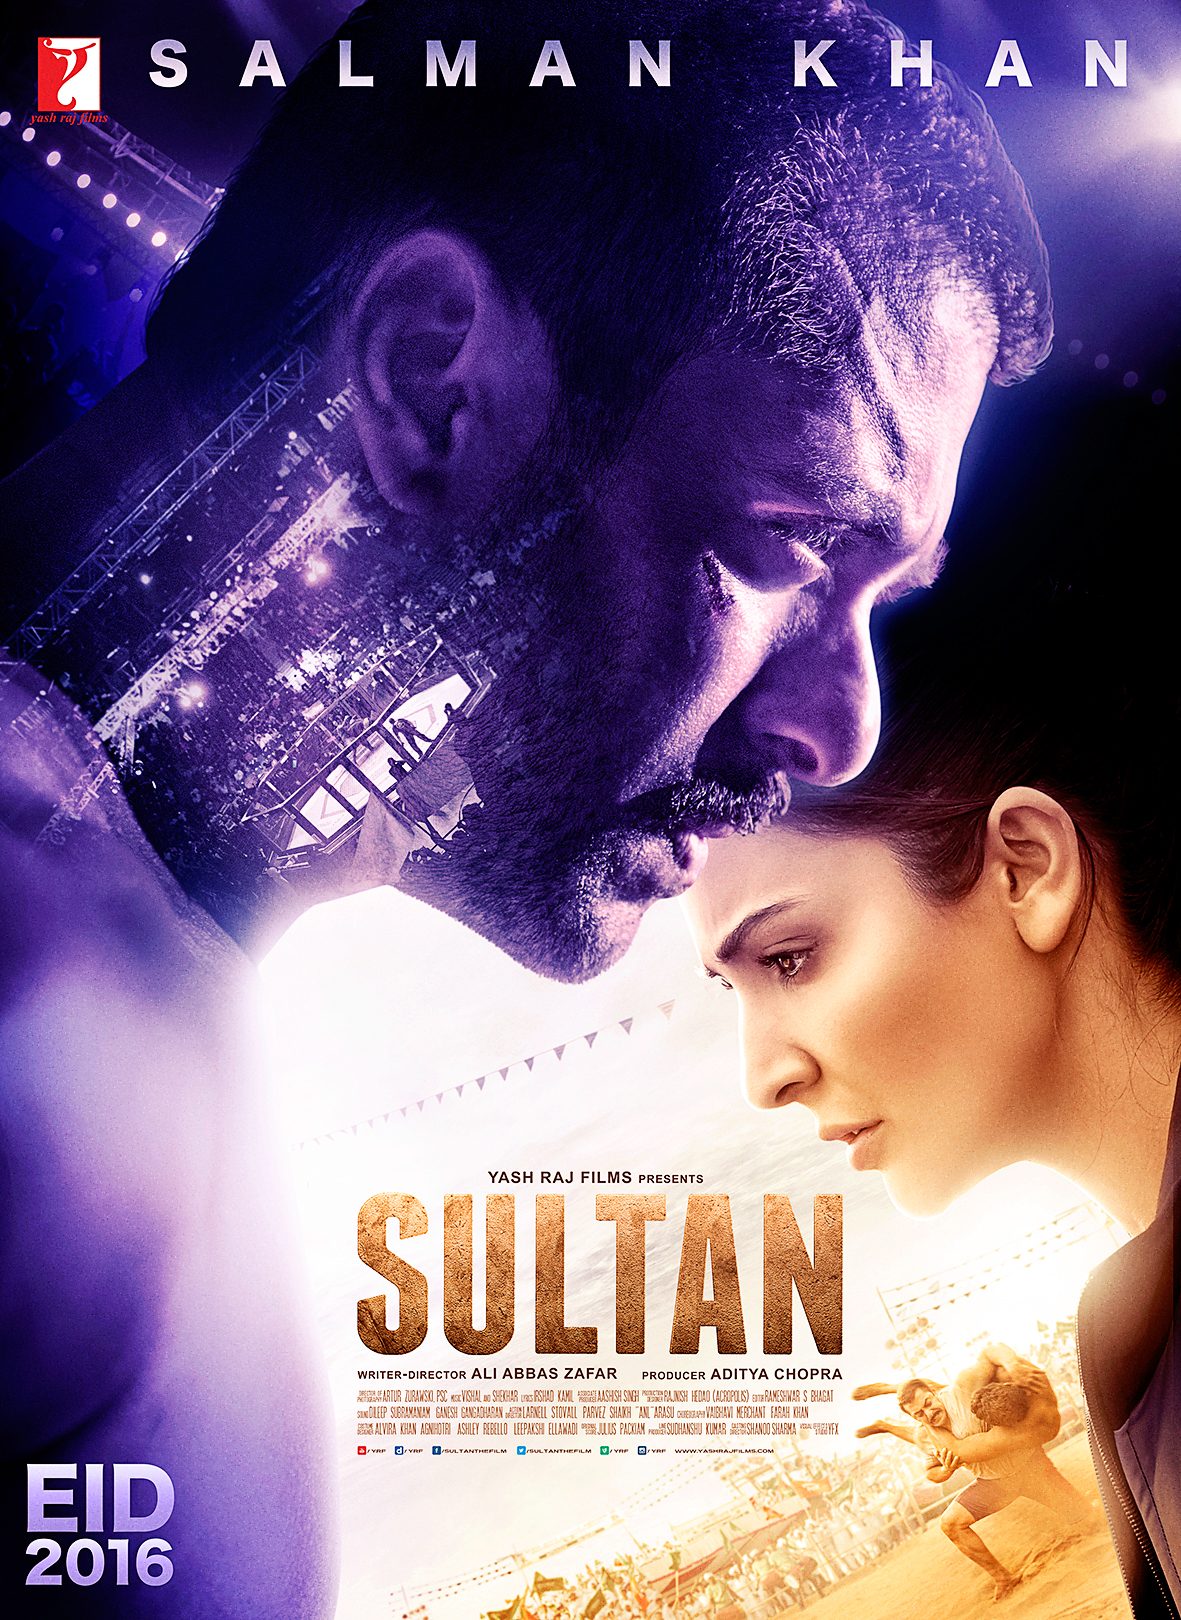 Sultan (2016) 1080p Blu-ray x264 AAC 5.1 Subs -DDR | G- Drive | 2.40 GB |